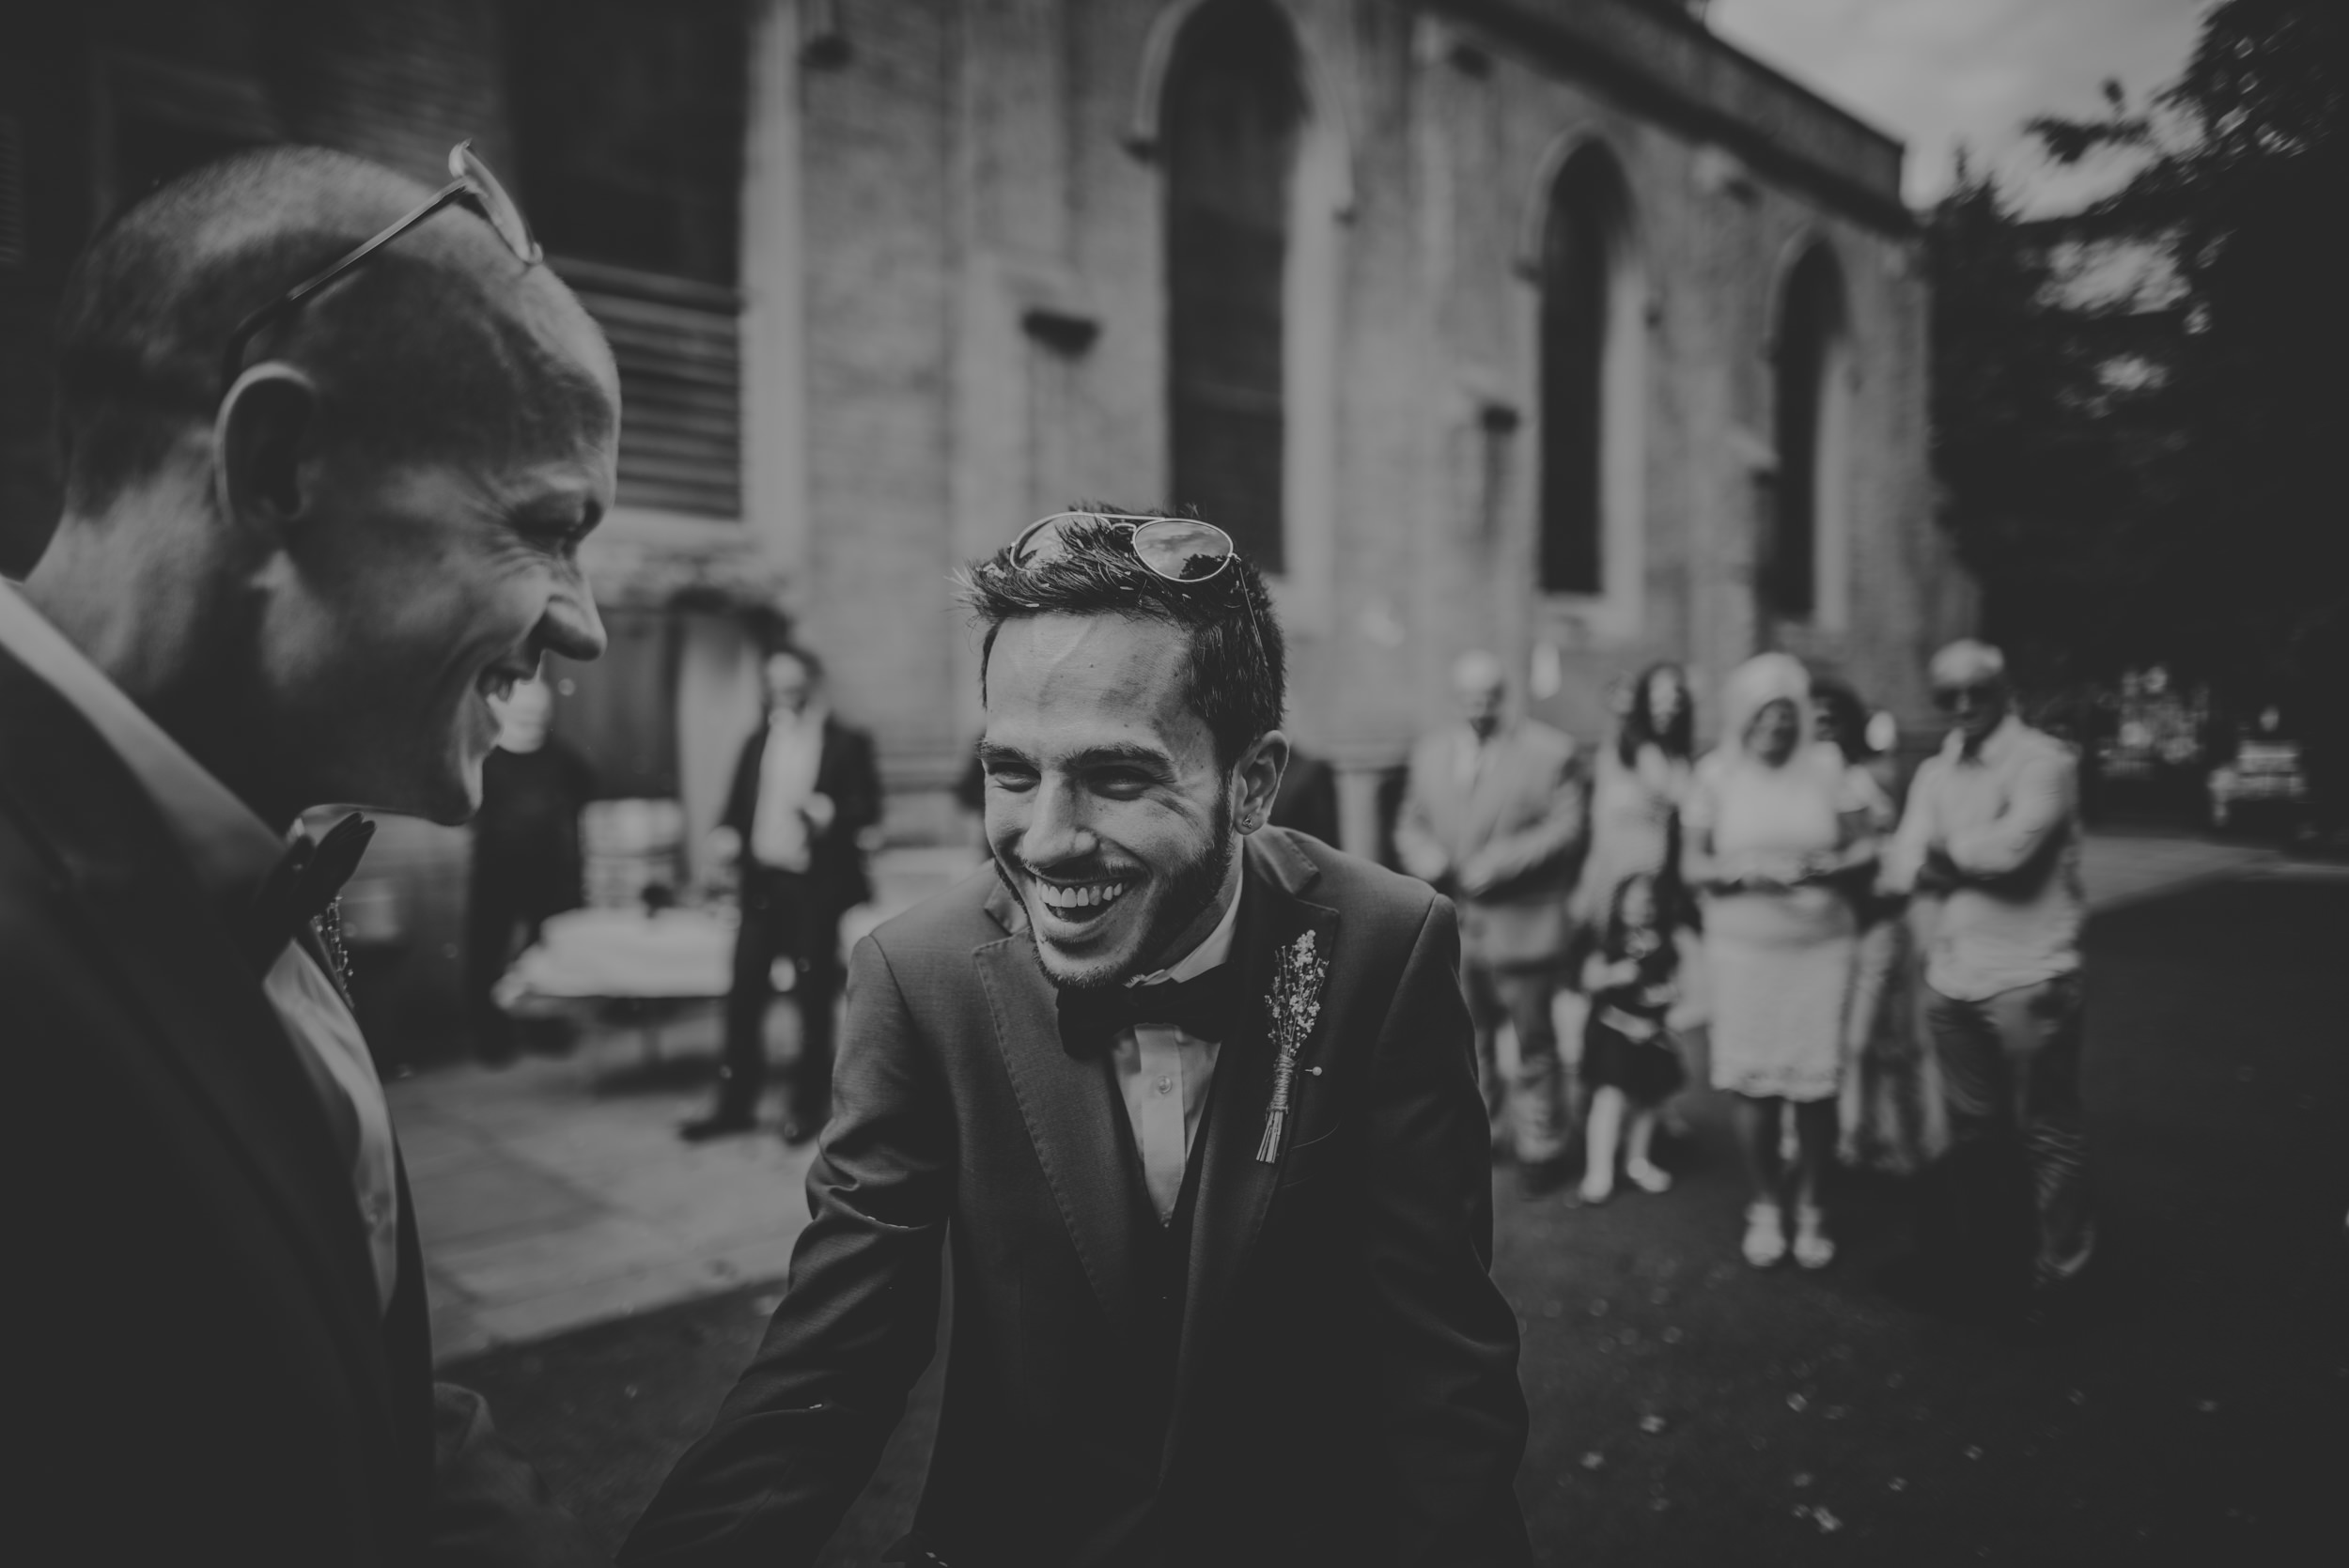 Rhys-and-Alex-Wedding-in-London-Manu-Mendoza-Wedding-Photography-318.jpg